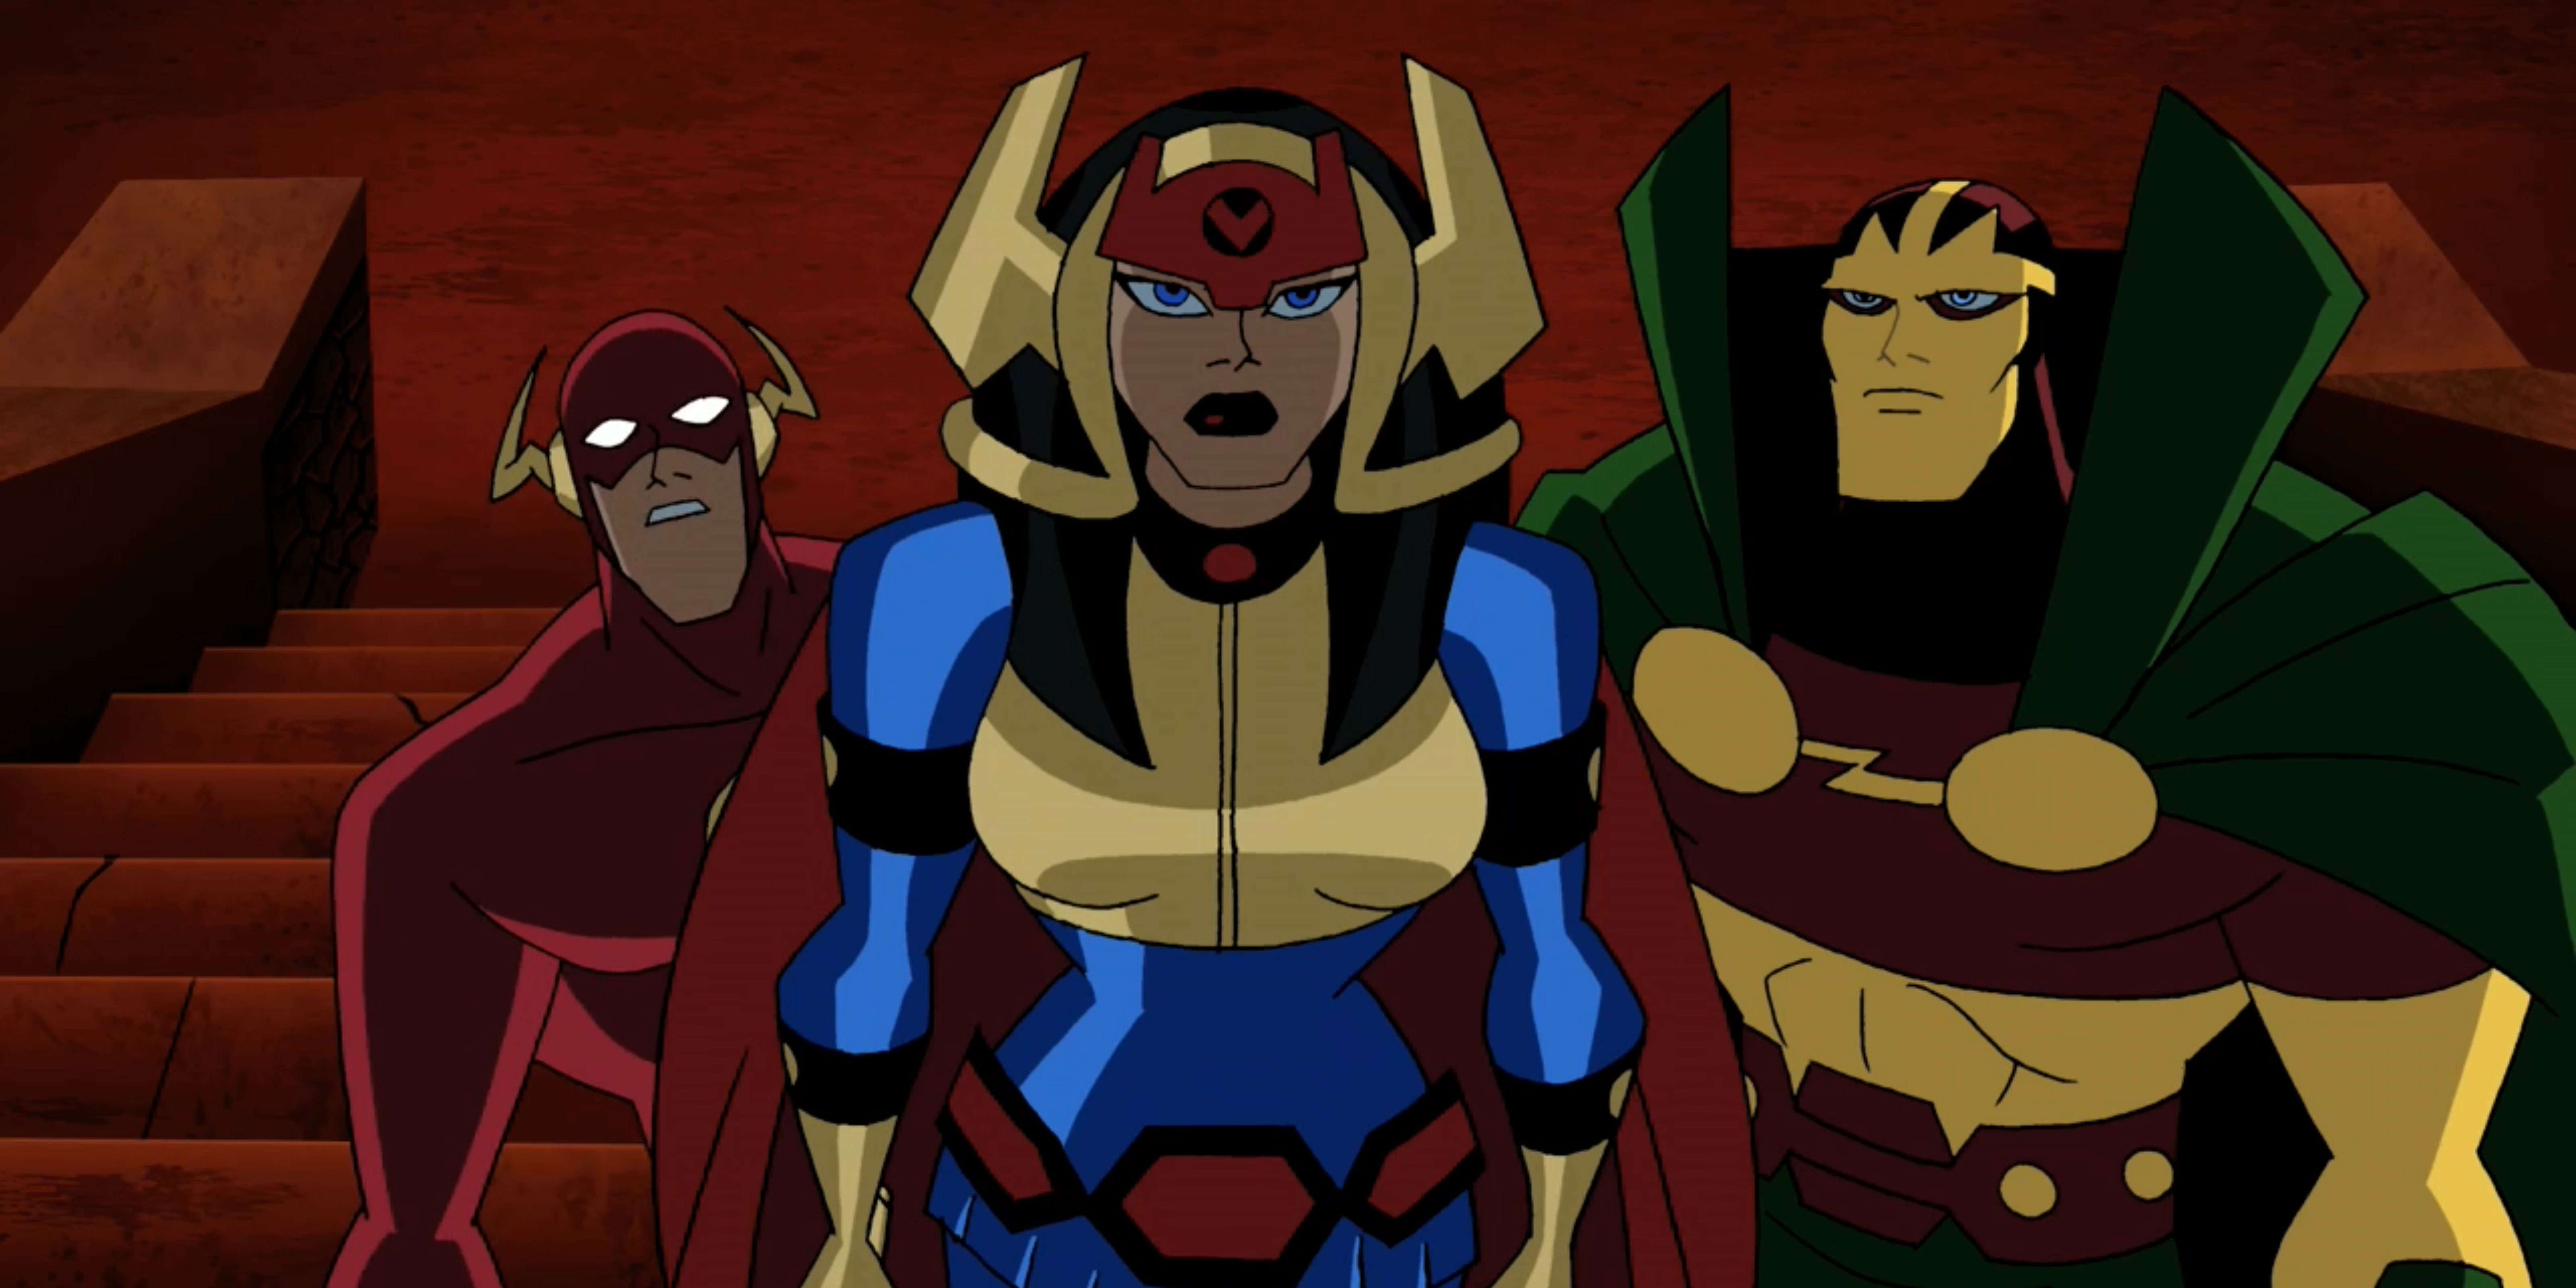 Big Barda, Mister Miracle, and The Flash.